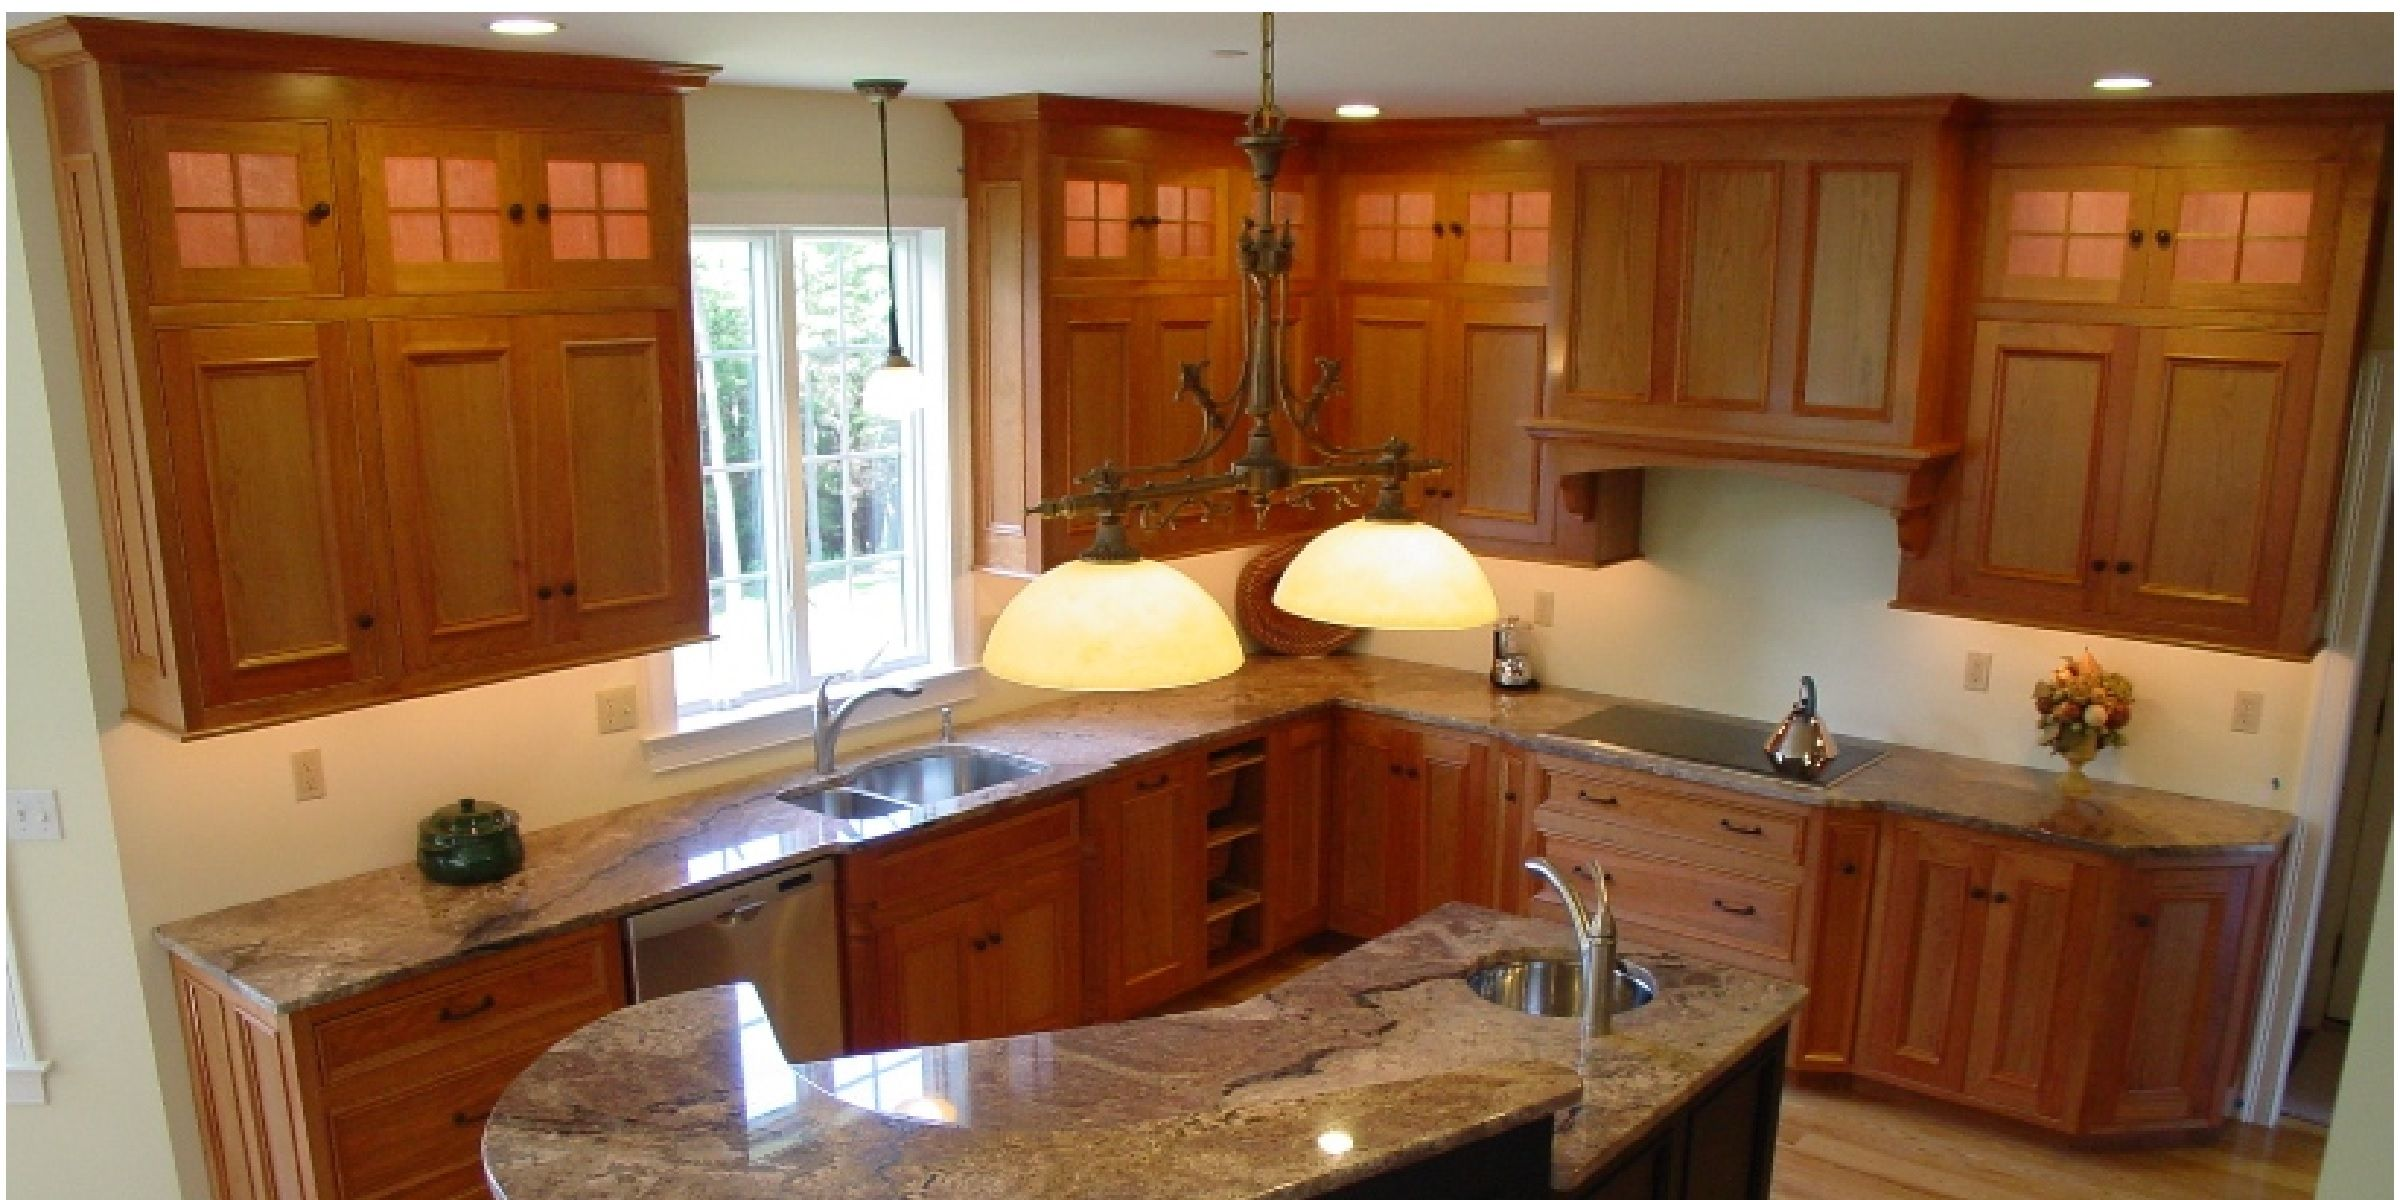 Pin by granite creations on kitchen remodeling ideas pinterest - Kitchen remodel ideas pinterest ...